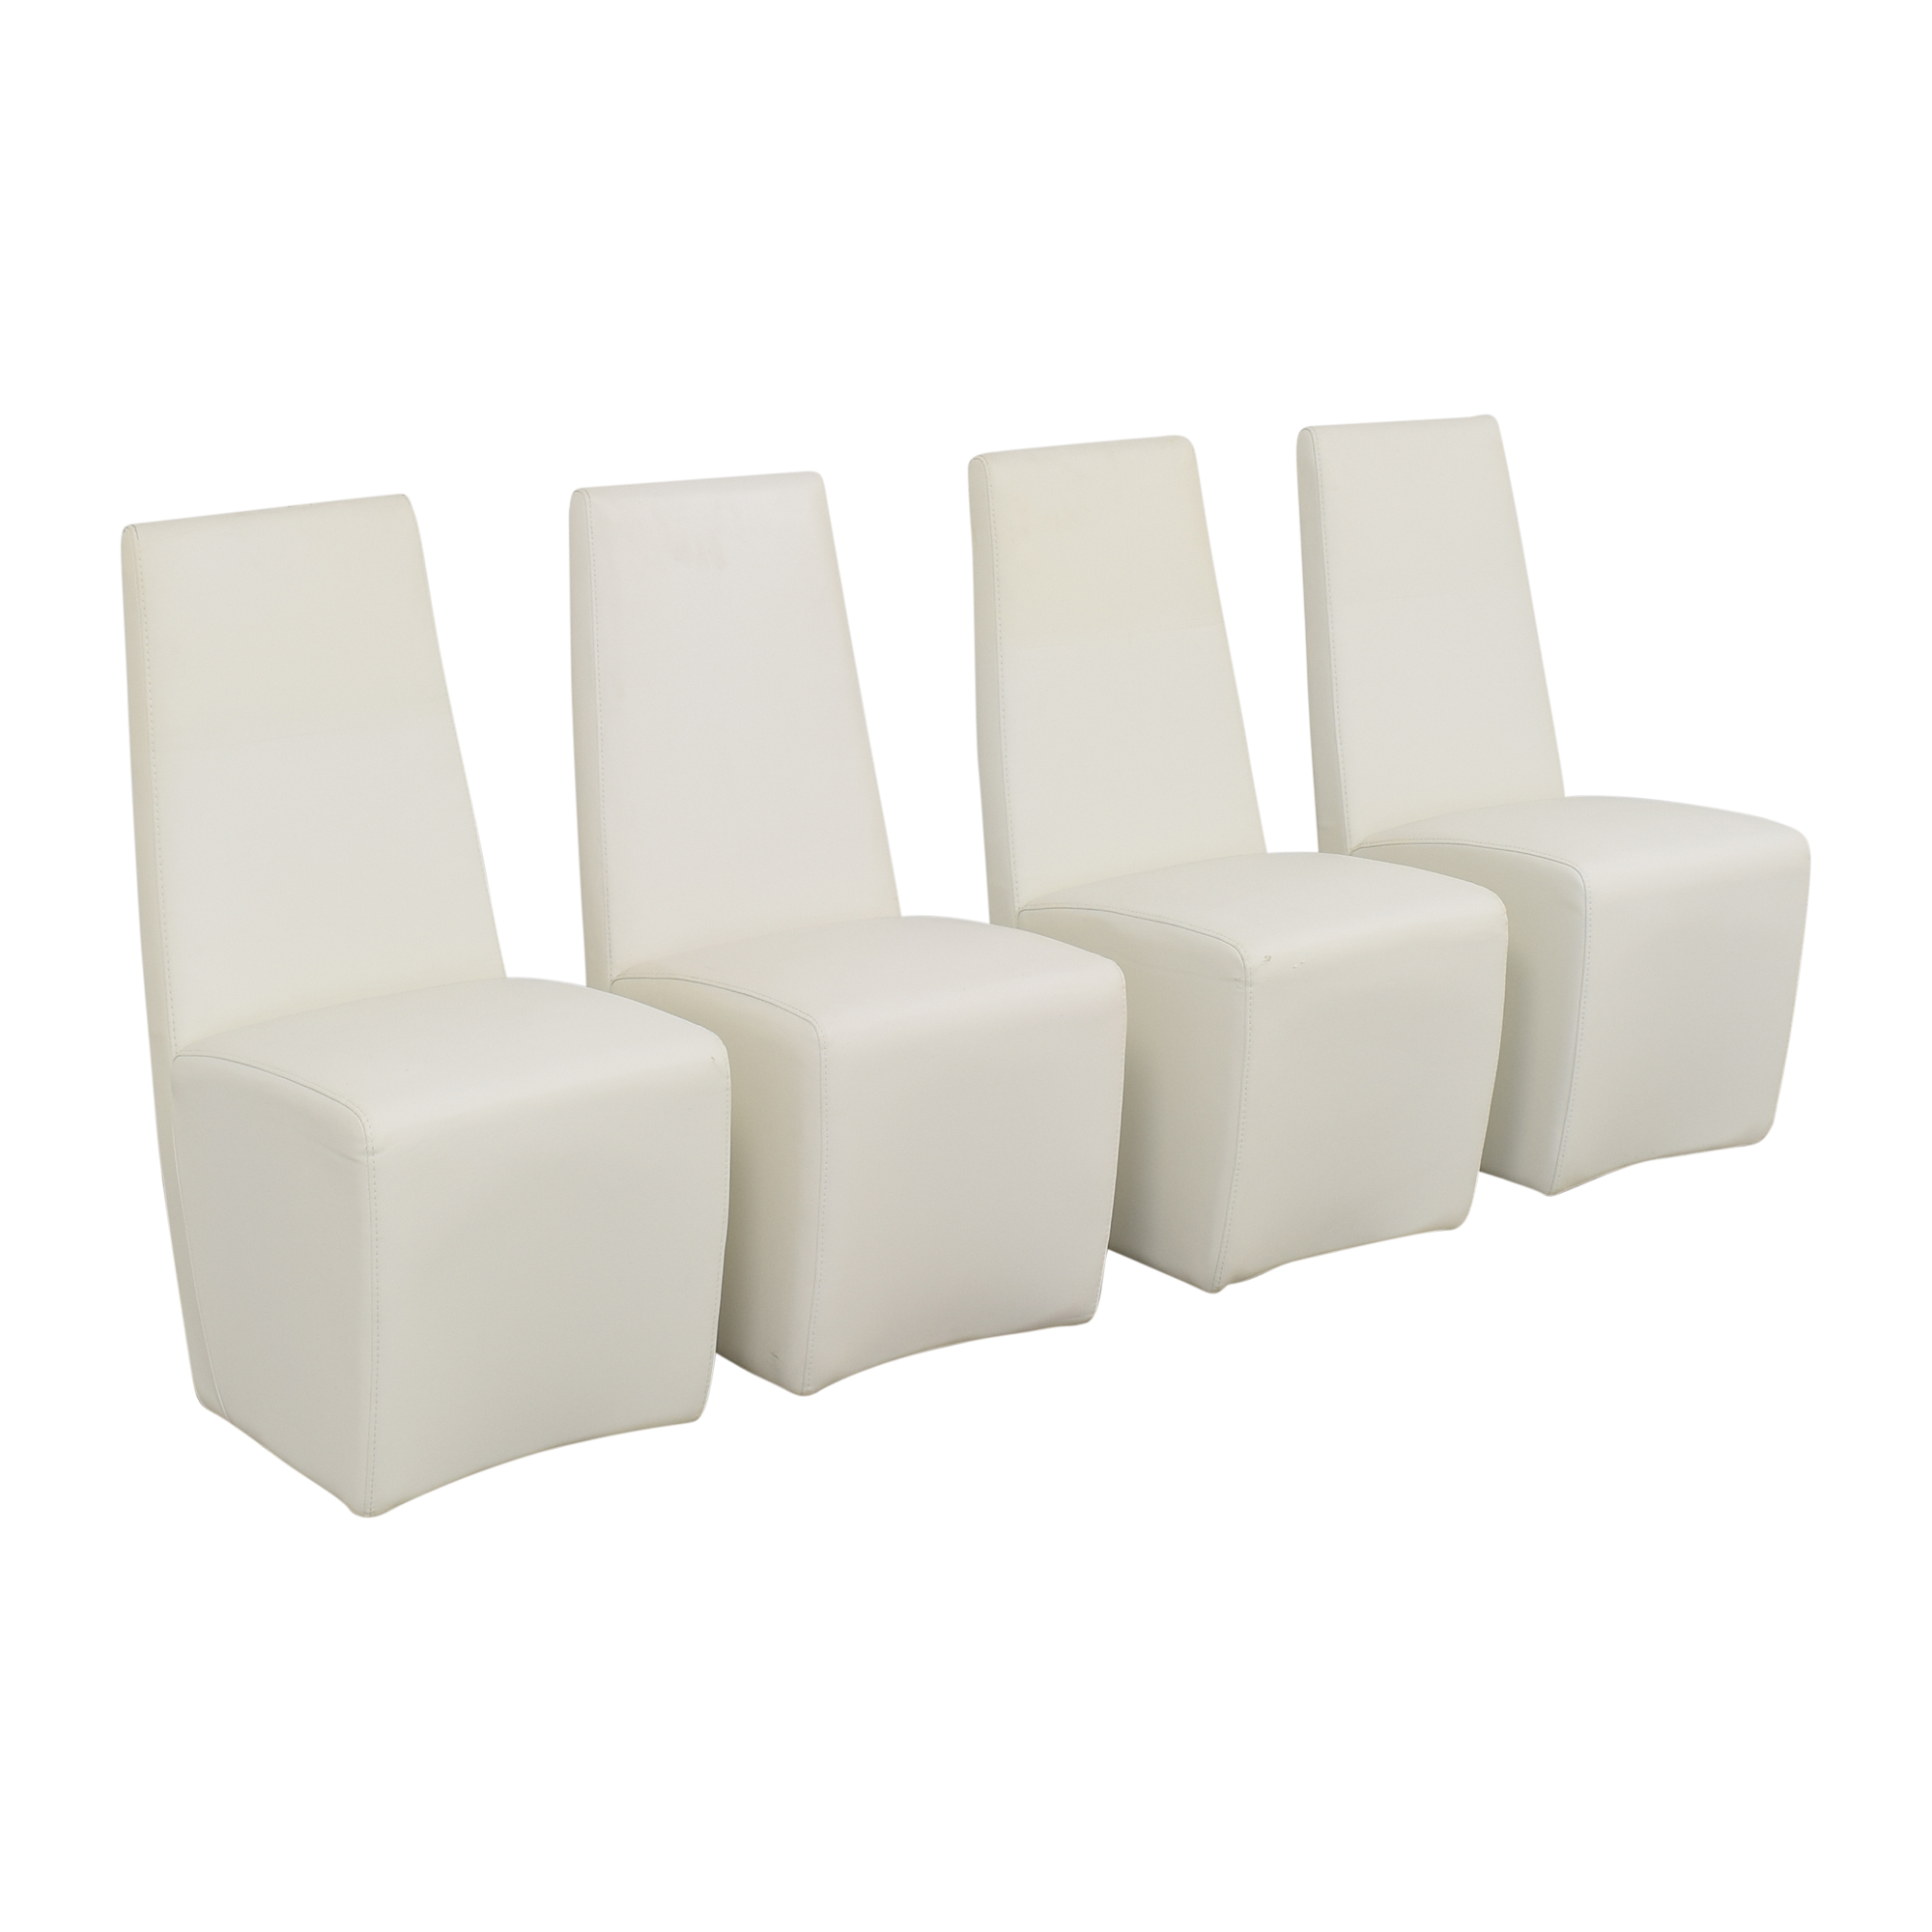 Star Furniture Star Furniture Ritz by Essentials Tobi Dining Side Chairs pa